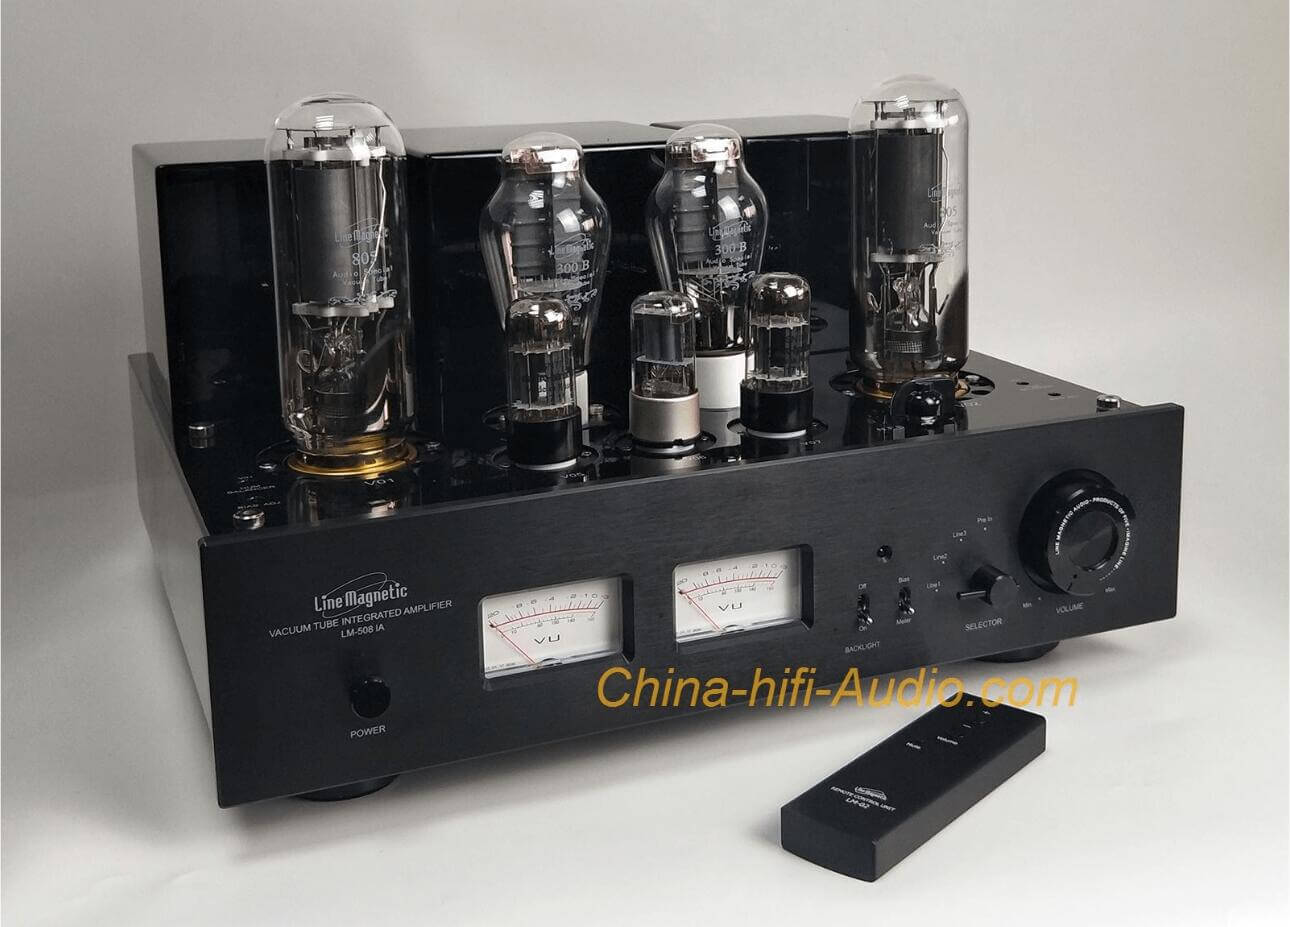 China-hifi-Audio Newly Presented Line Magnetic Amplifier To Offer Better Audiovisual Effects For Home Audio System